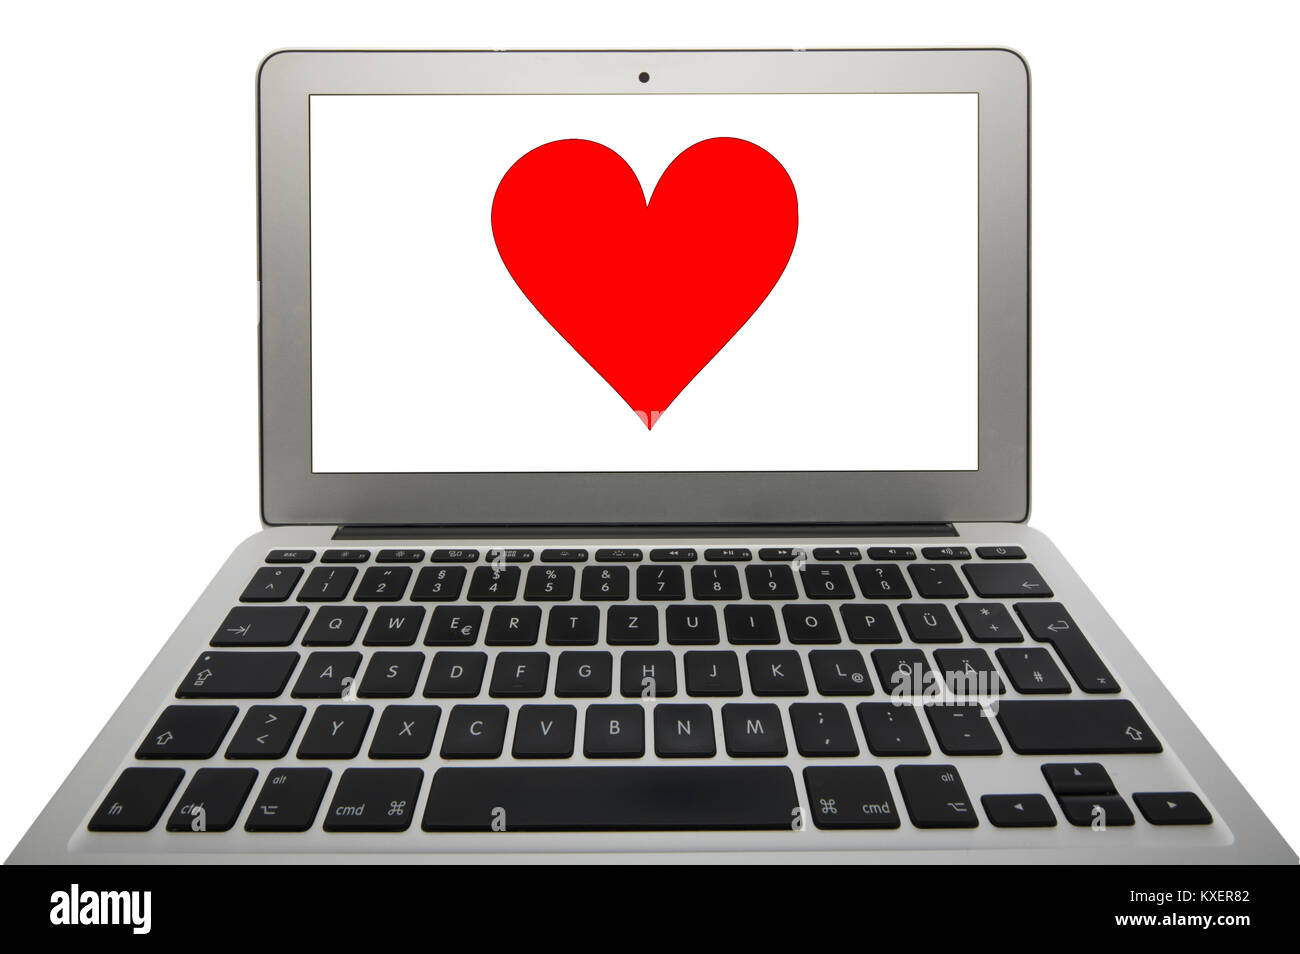 Symbol picture partnership agency,dating agency,heart website on notebook - Stock Image